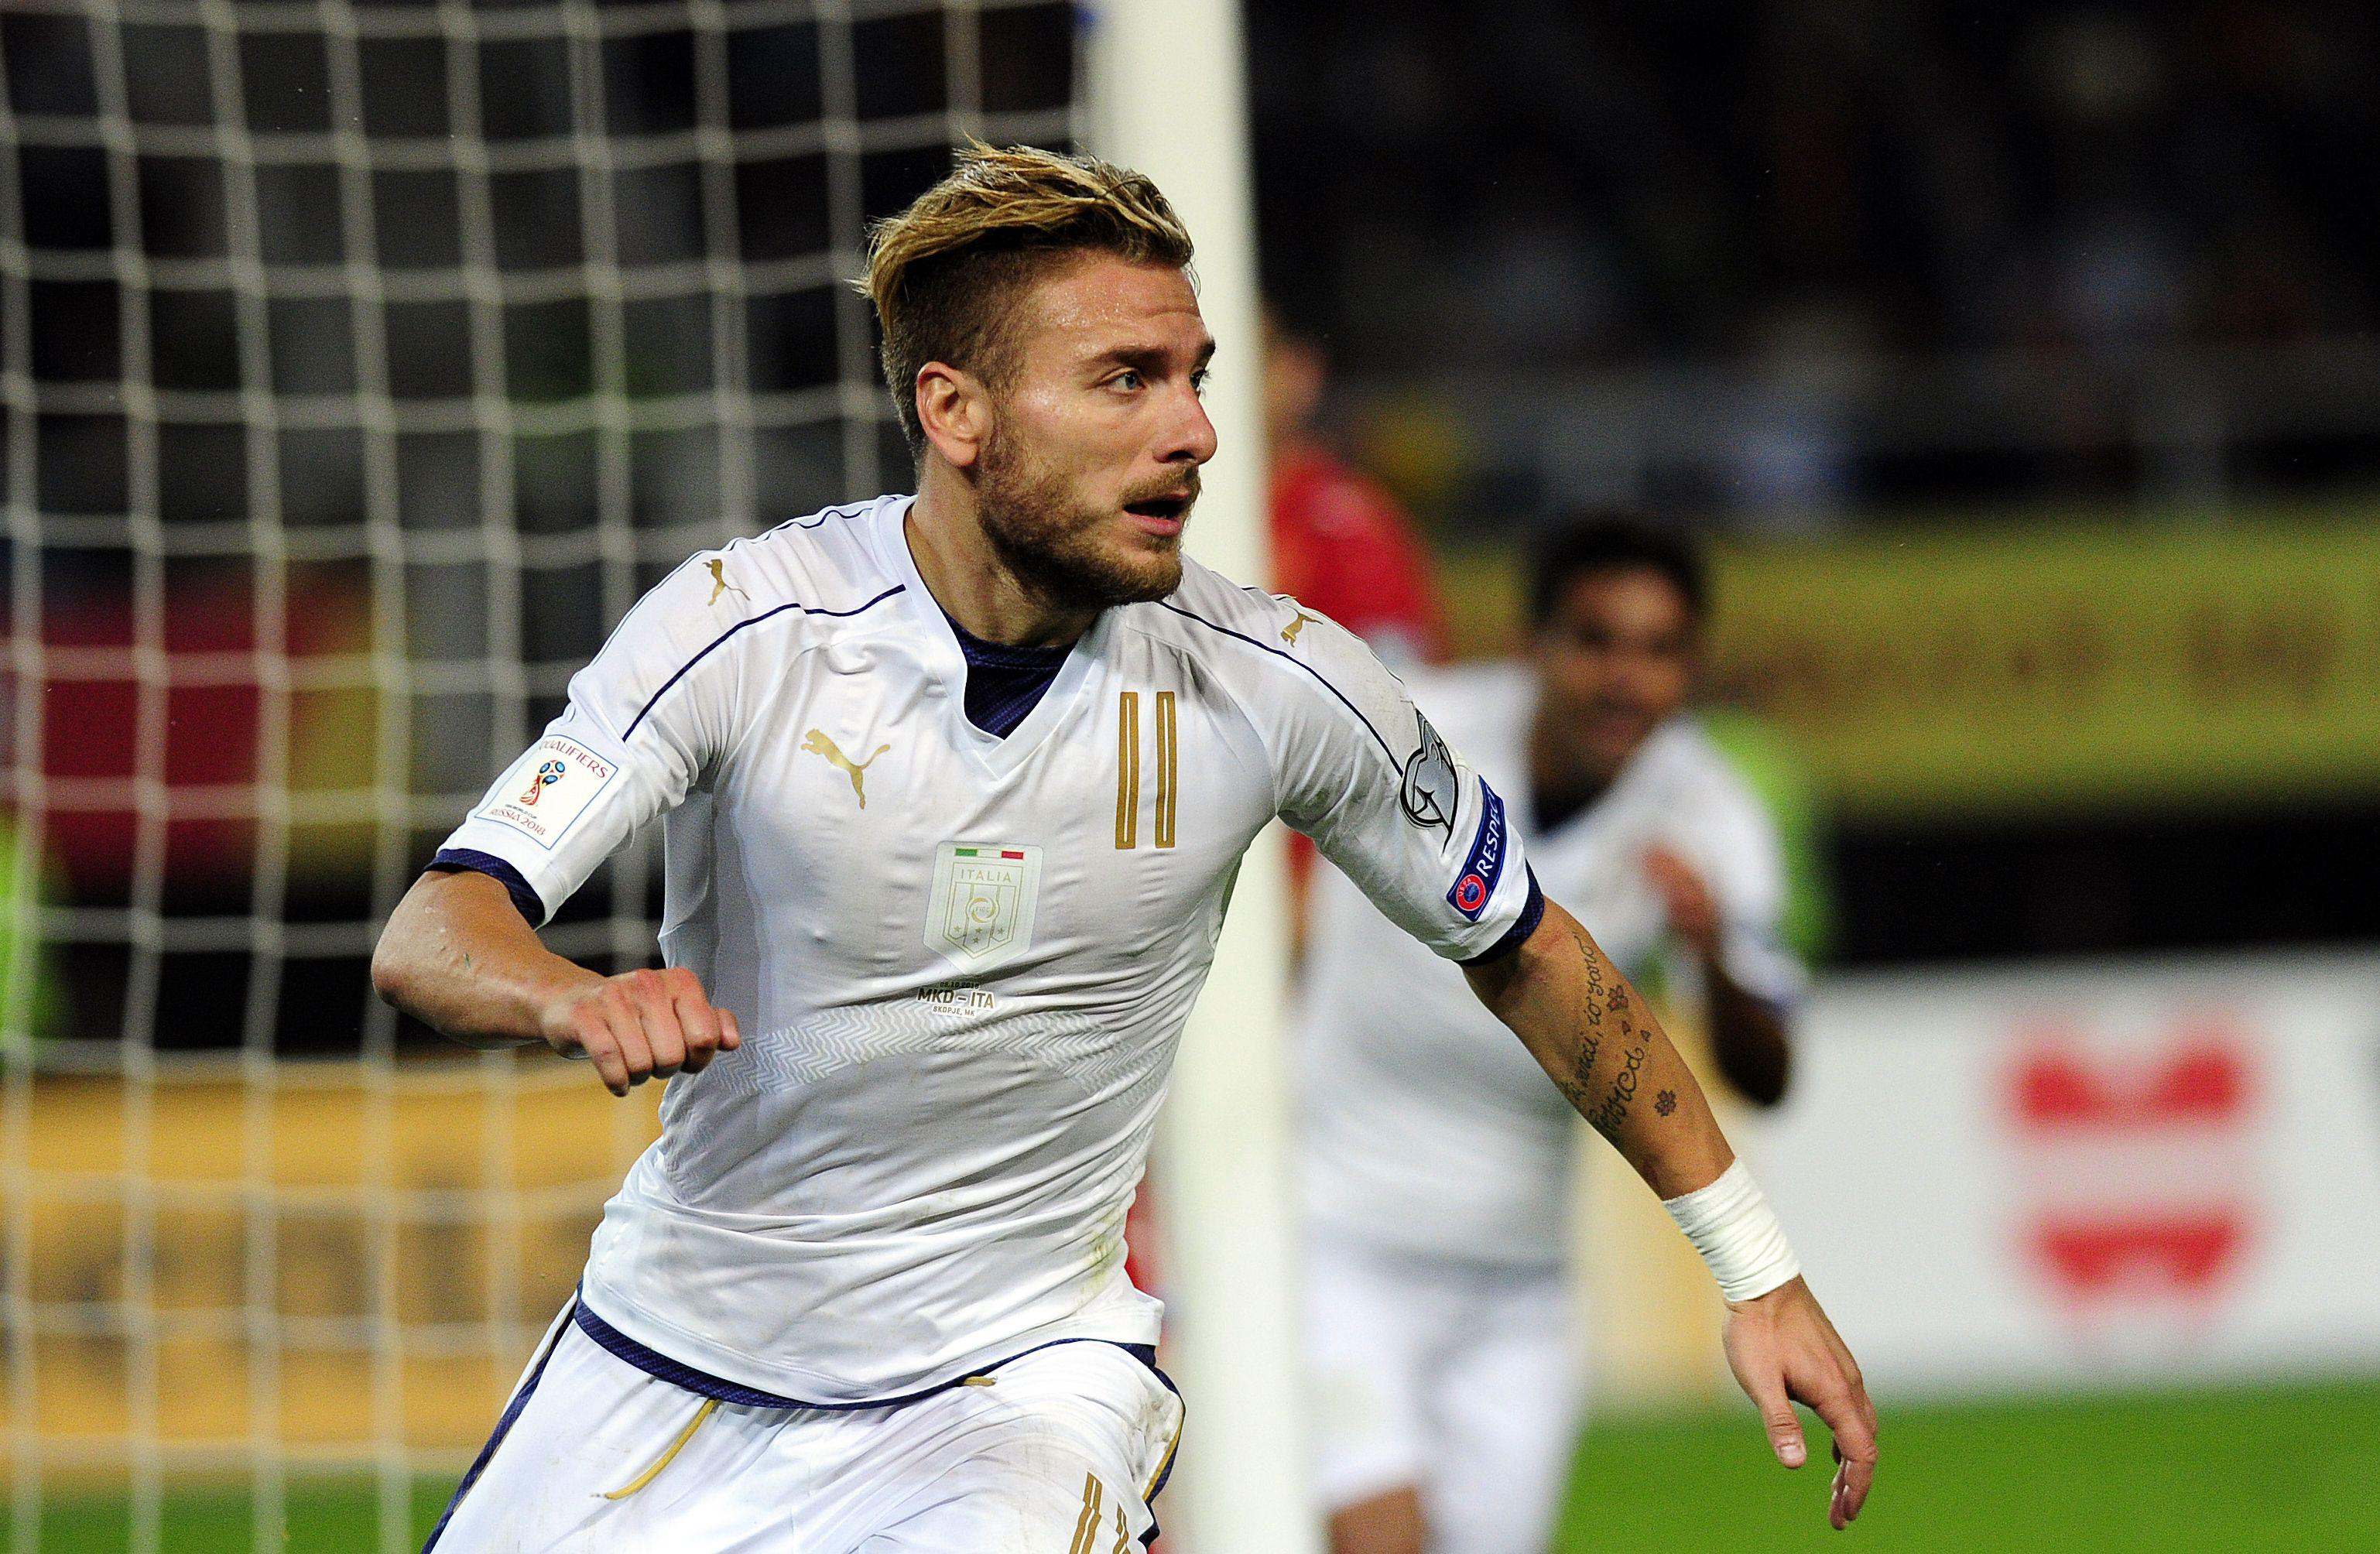 Immobile salva l'Italia: 3-2 al 91' in Macedonia